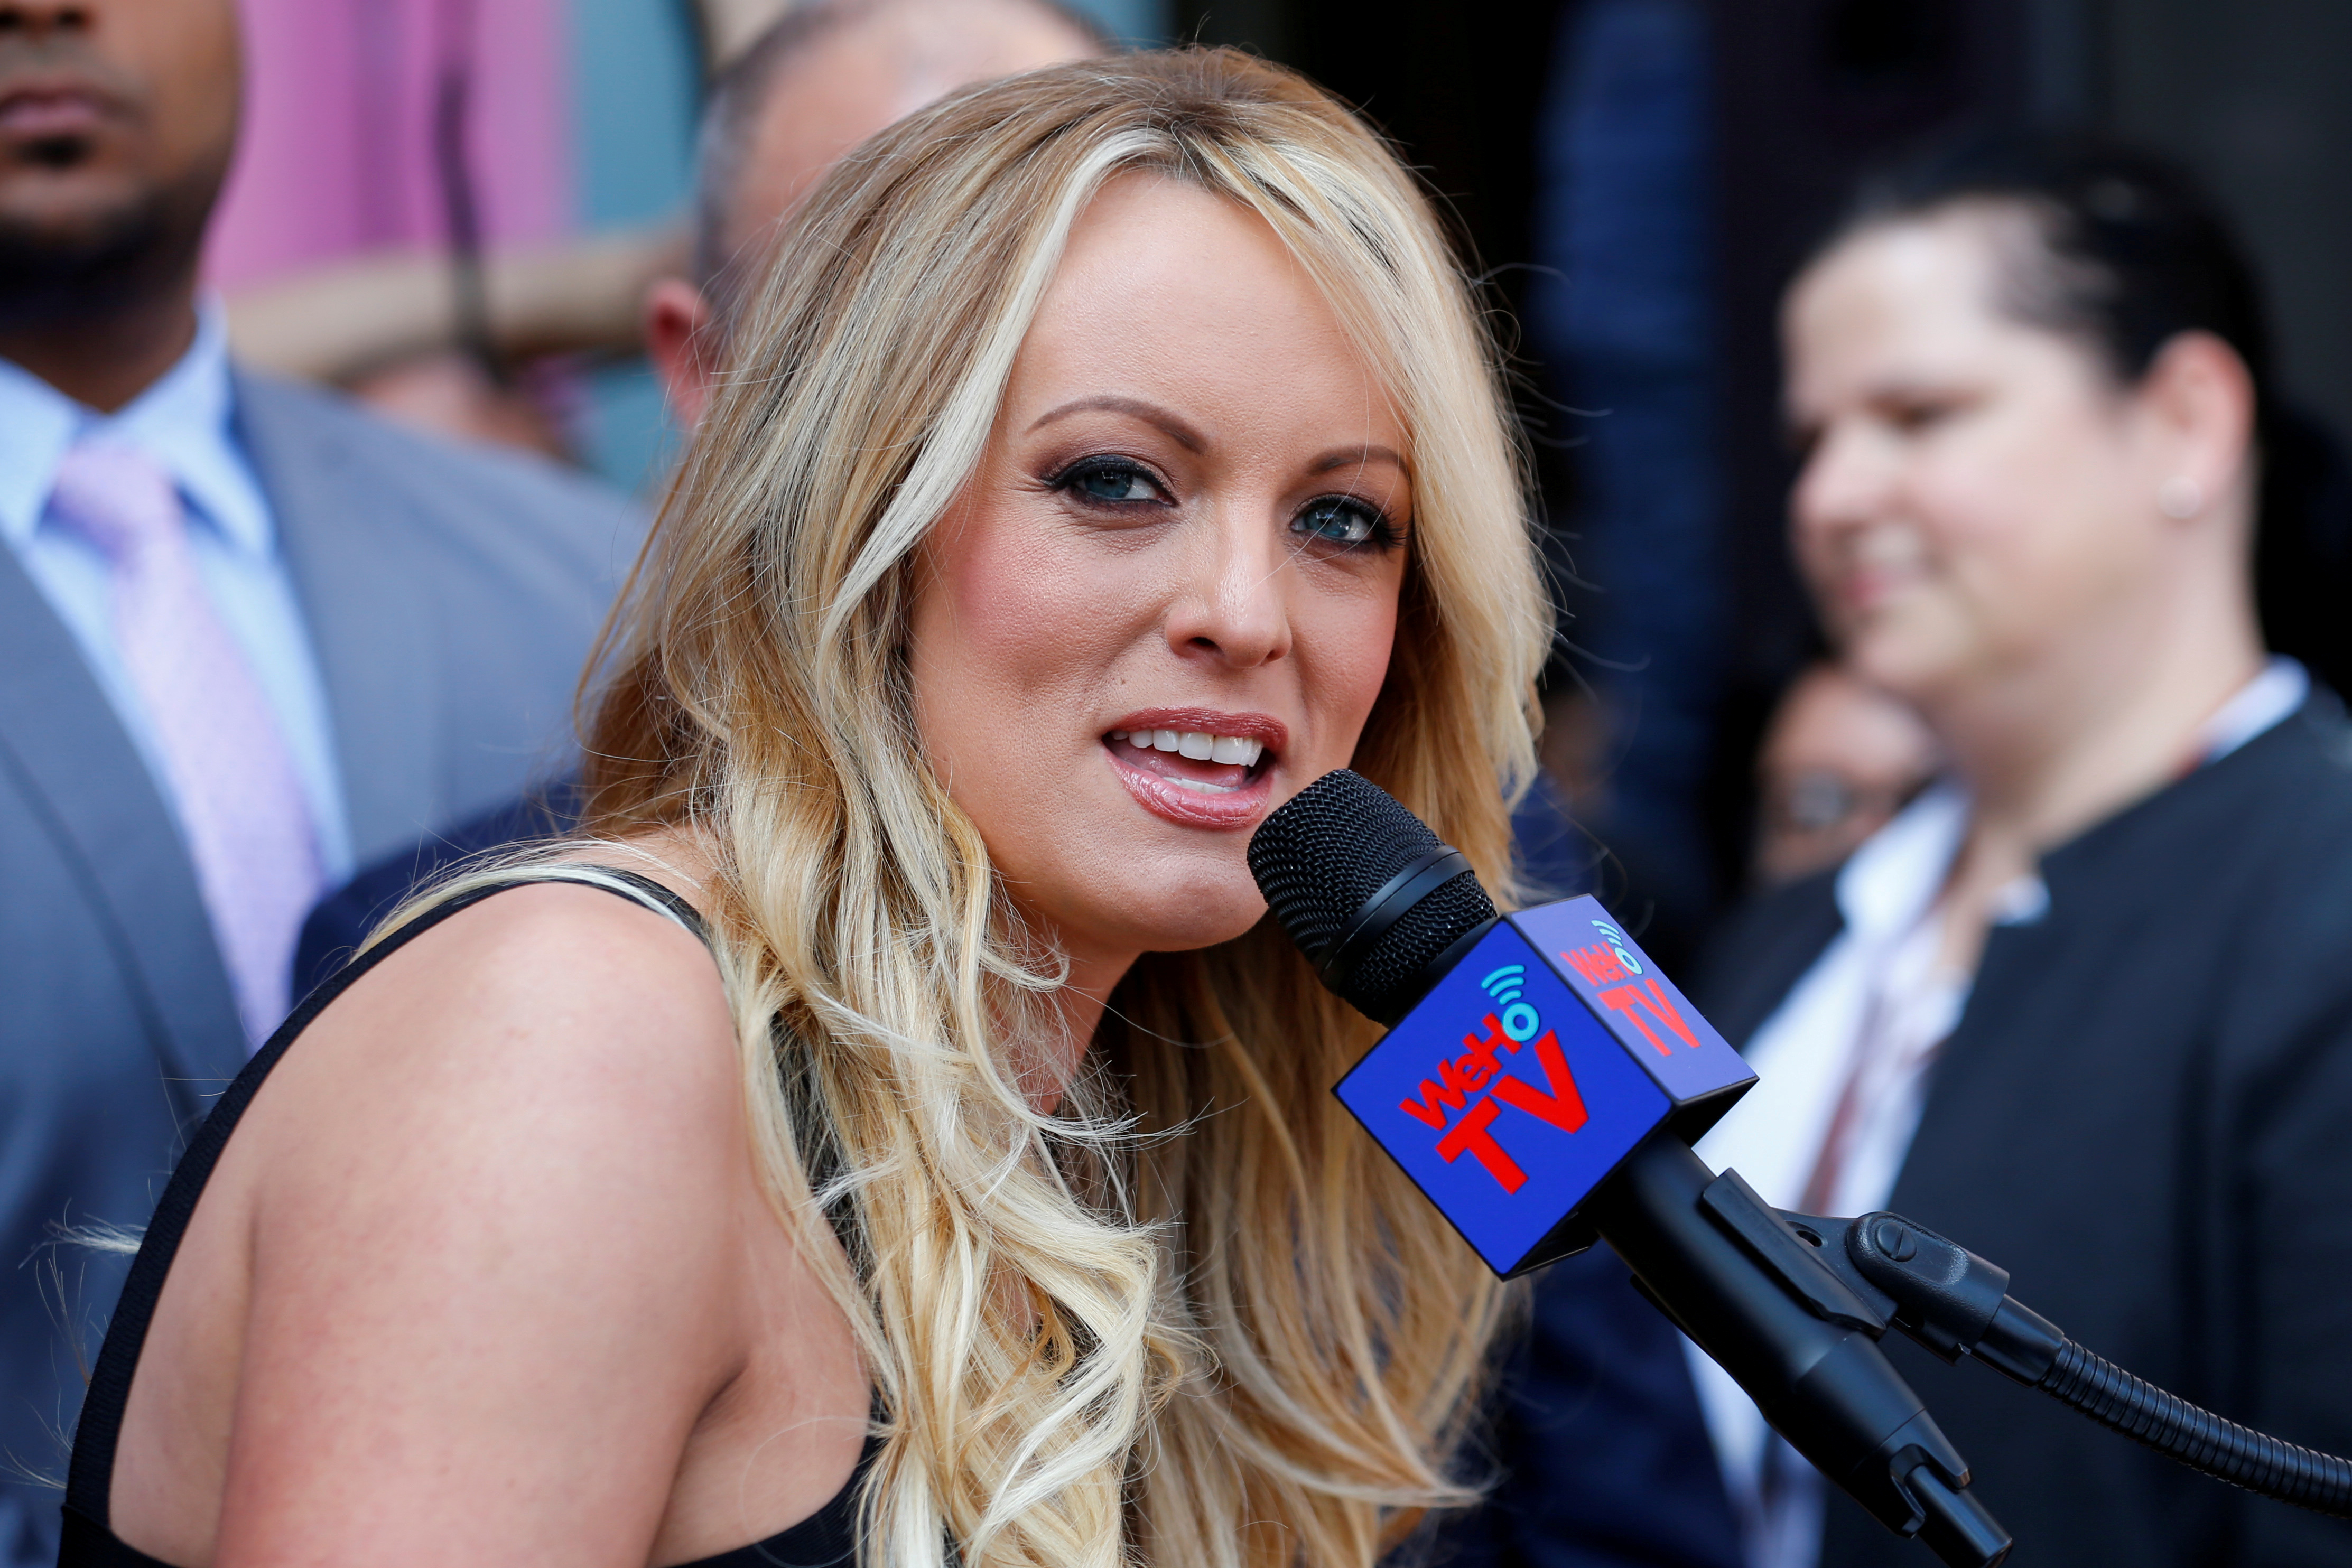 FILE - Stormy Daniels, the porn star currently in legal battles with U.S. President Donald Trump, speaks in West Hollywood, Calif., May 23, 2018.